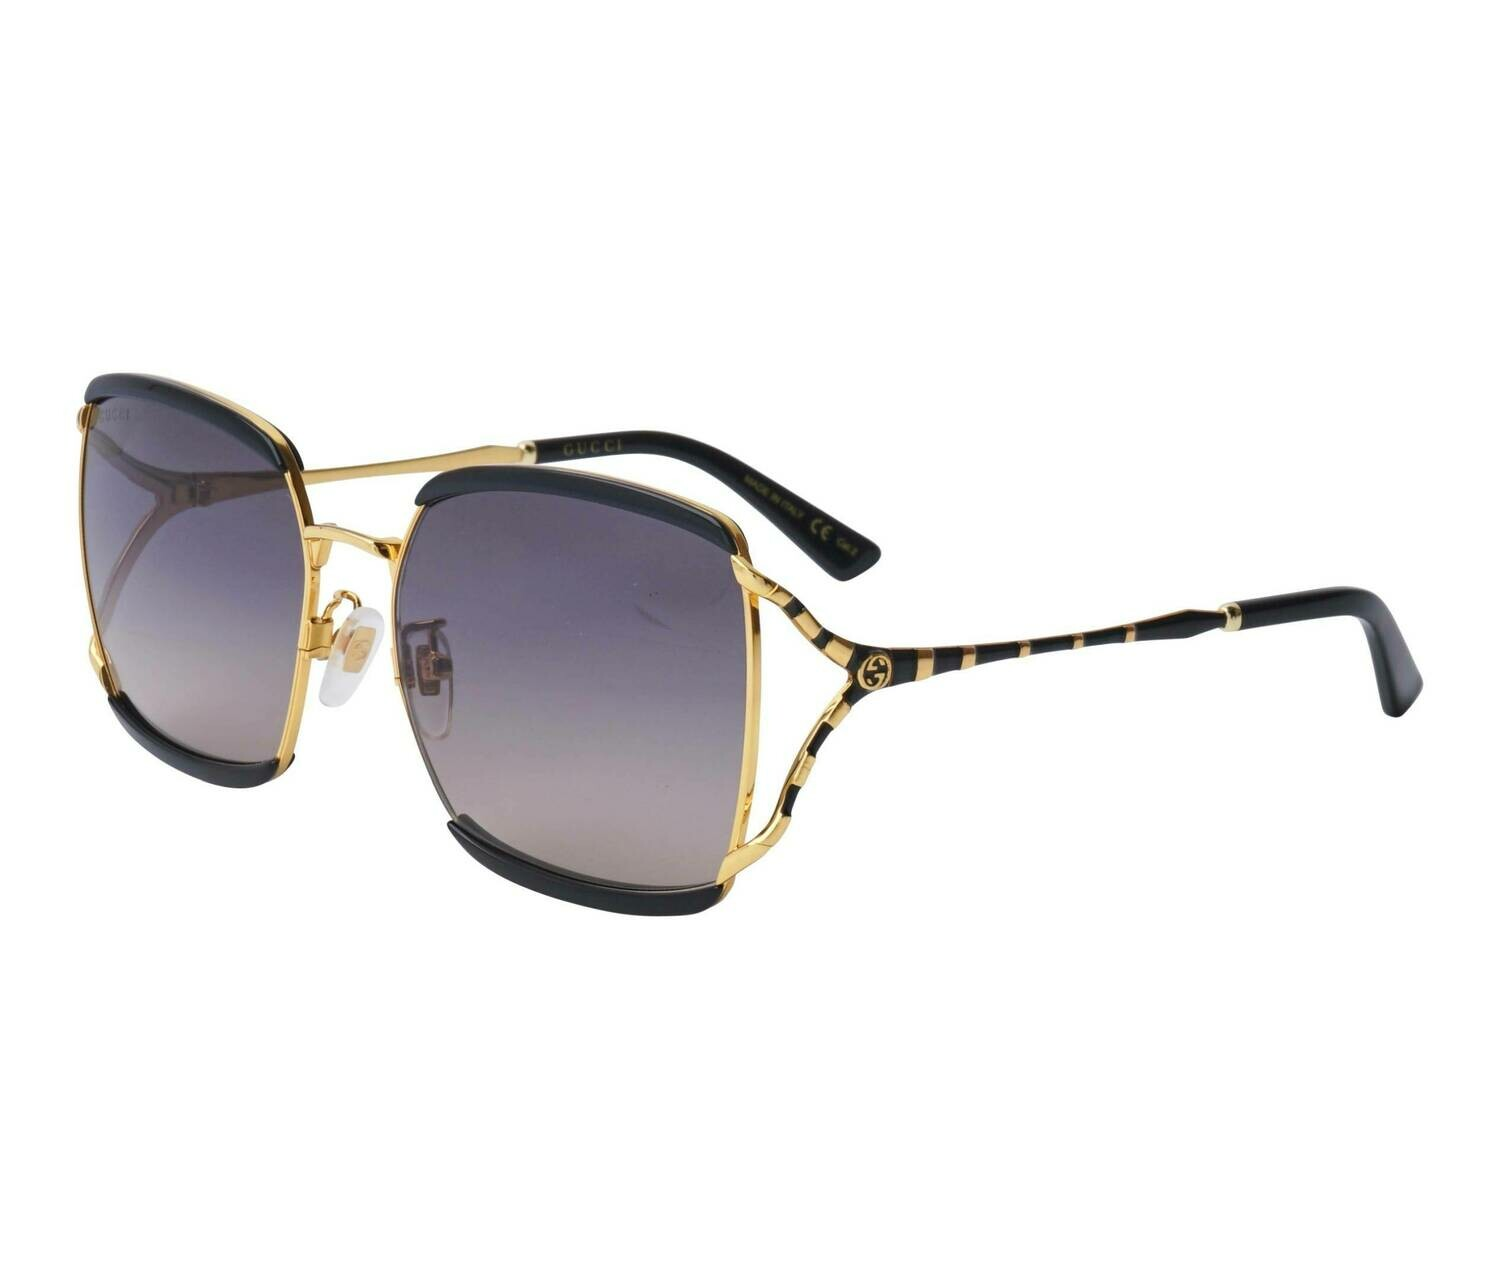 Gucci Sunglass Woman Injection In Black and Gold With Purple Lenses